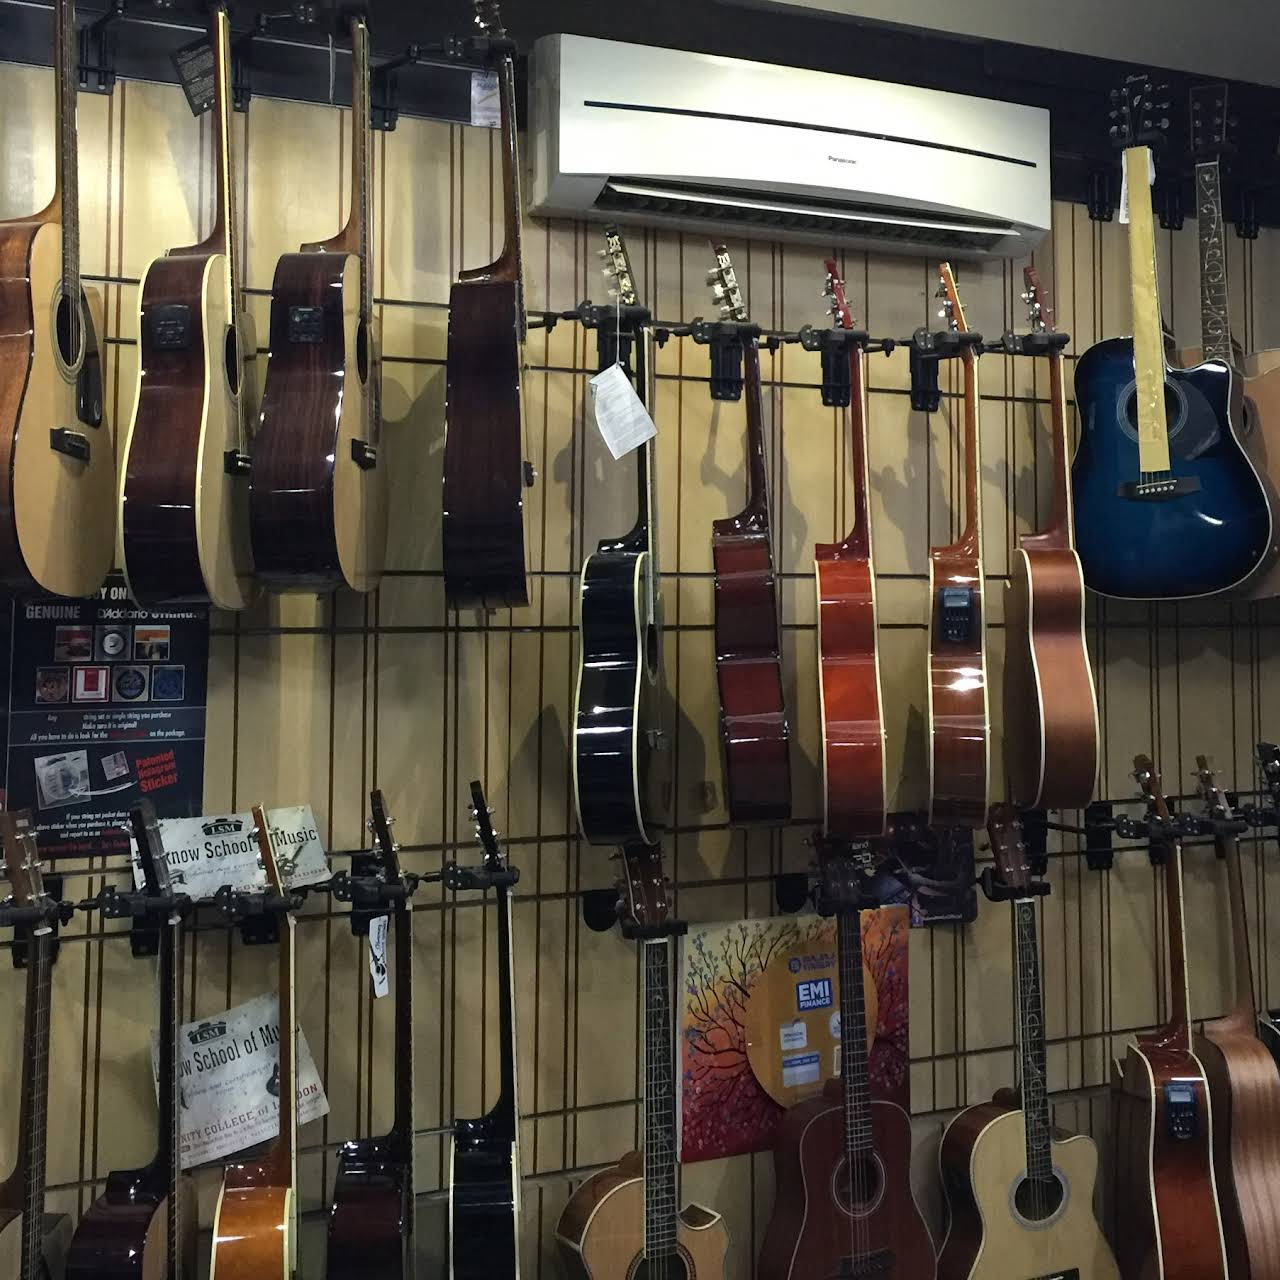 guitarwala alfa link vision - musical instrument store in lucknow